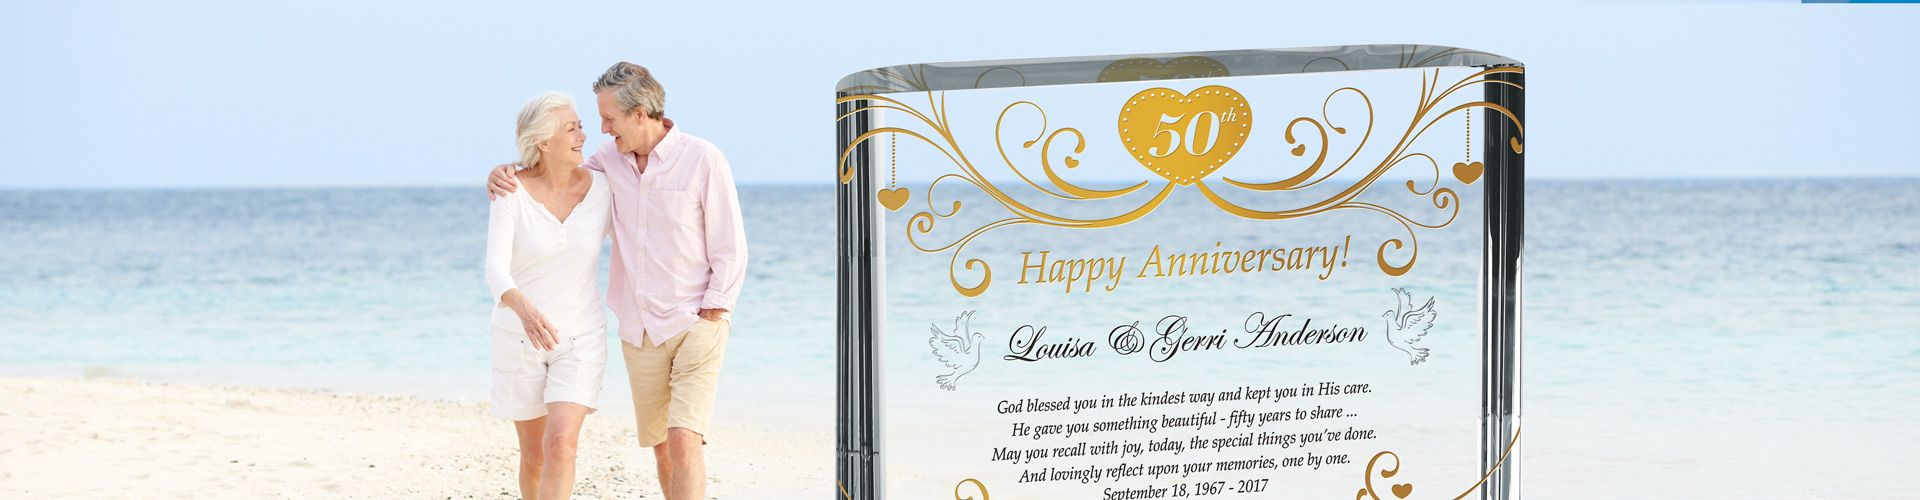 Wedding Anniversary Wordings For Parents And Sample Layout Diy